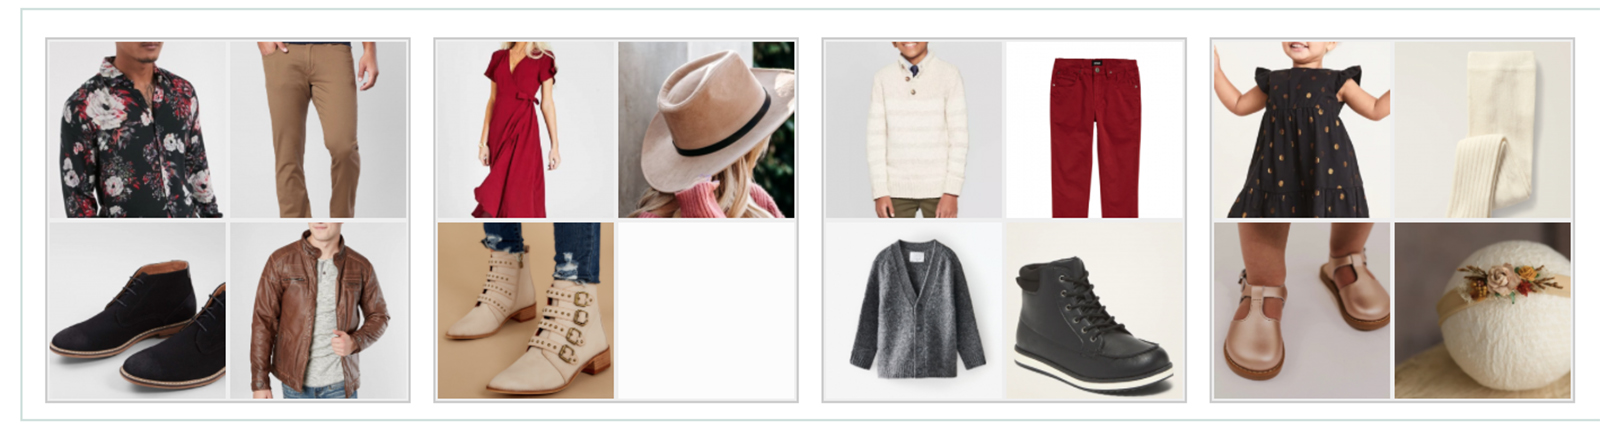 Style and Select photo wardrobe options